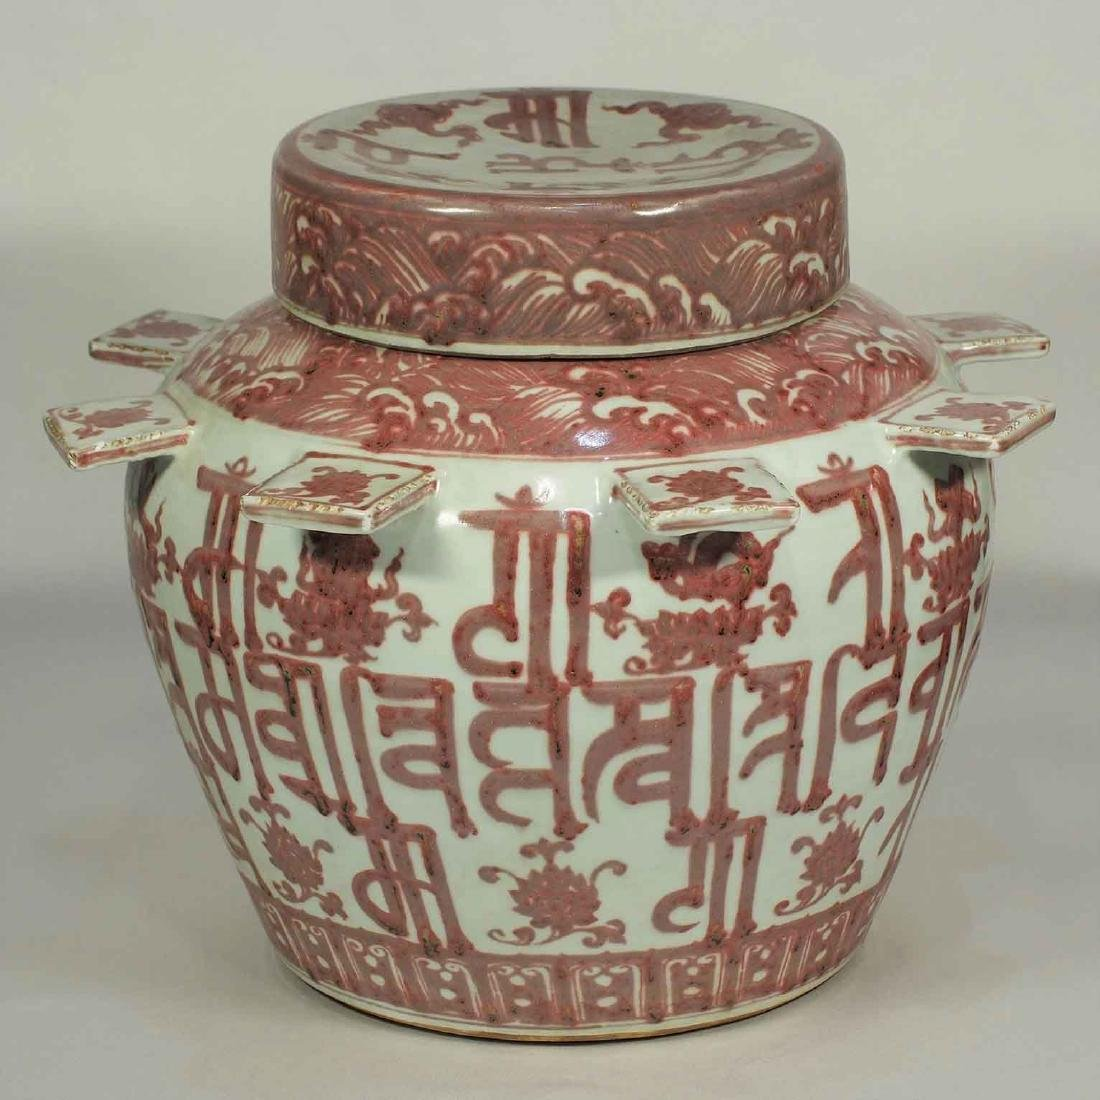 Lidded Jar with Tibetan Script Design, Yongle, Ming